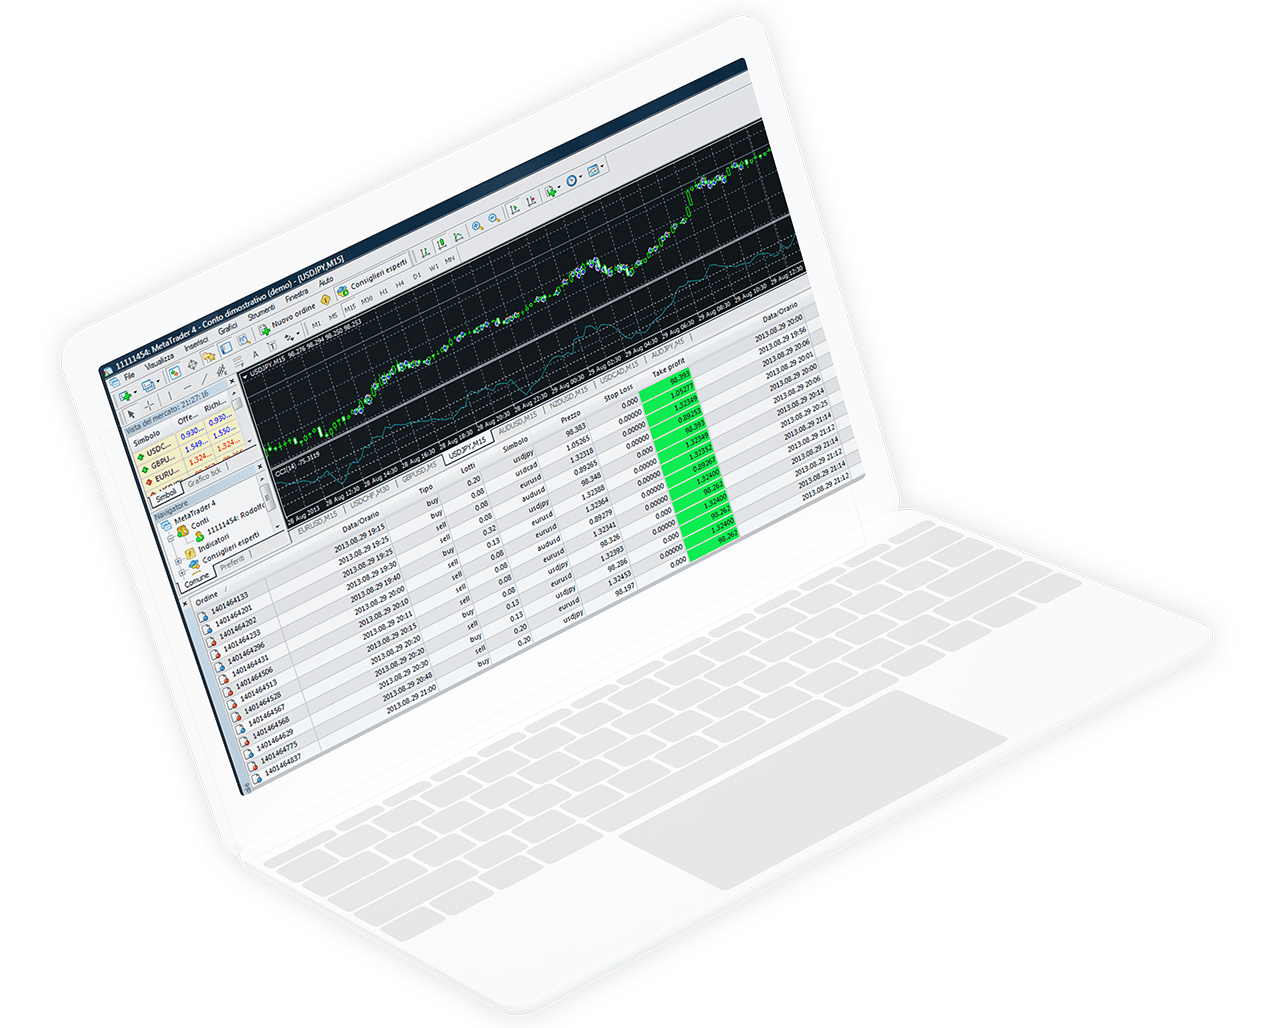 Best Trading Platforms UK | Software for Trading Forex, Shares, Bitcoin & CFDs | ADSS